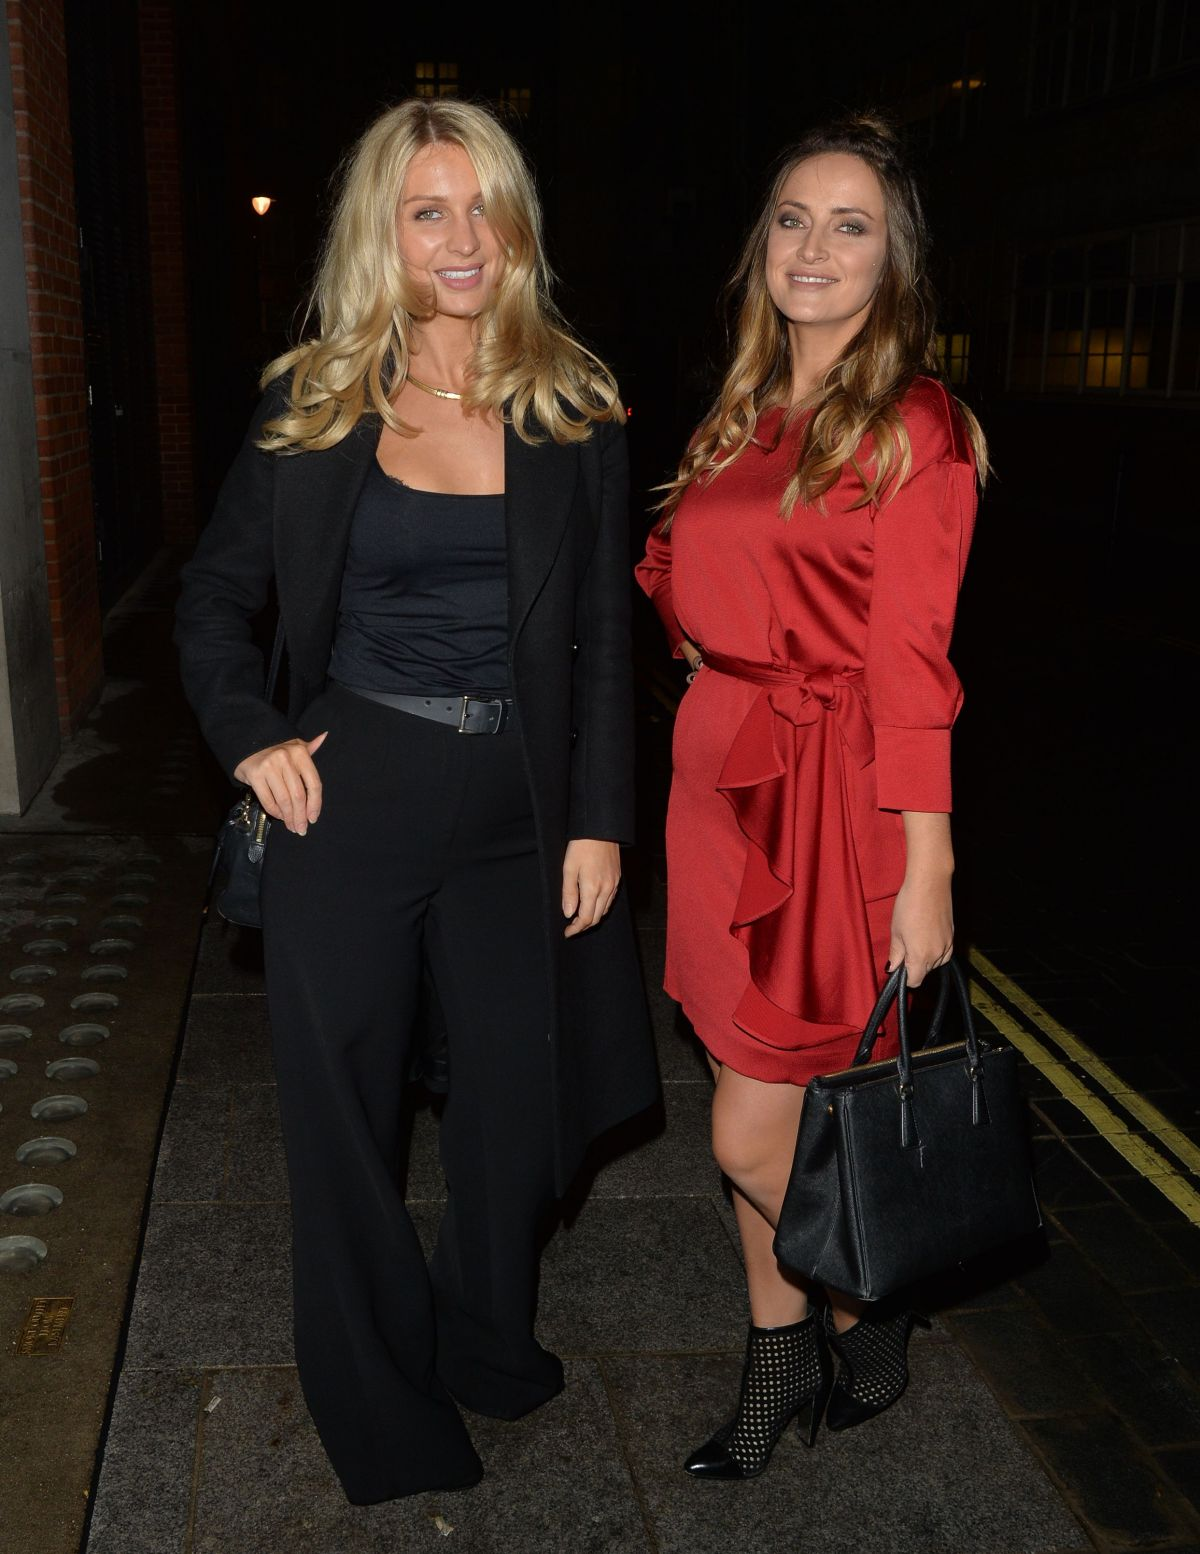 OLIVIA and FRANCESCA NEWMAN-YOUNG Night Out in London 11/10/2016